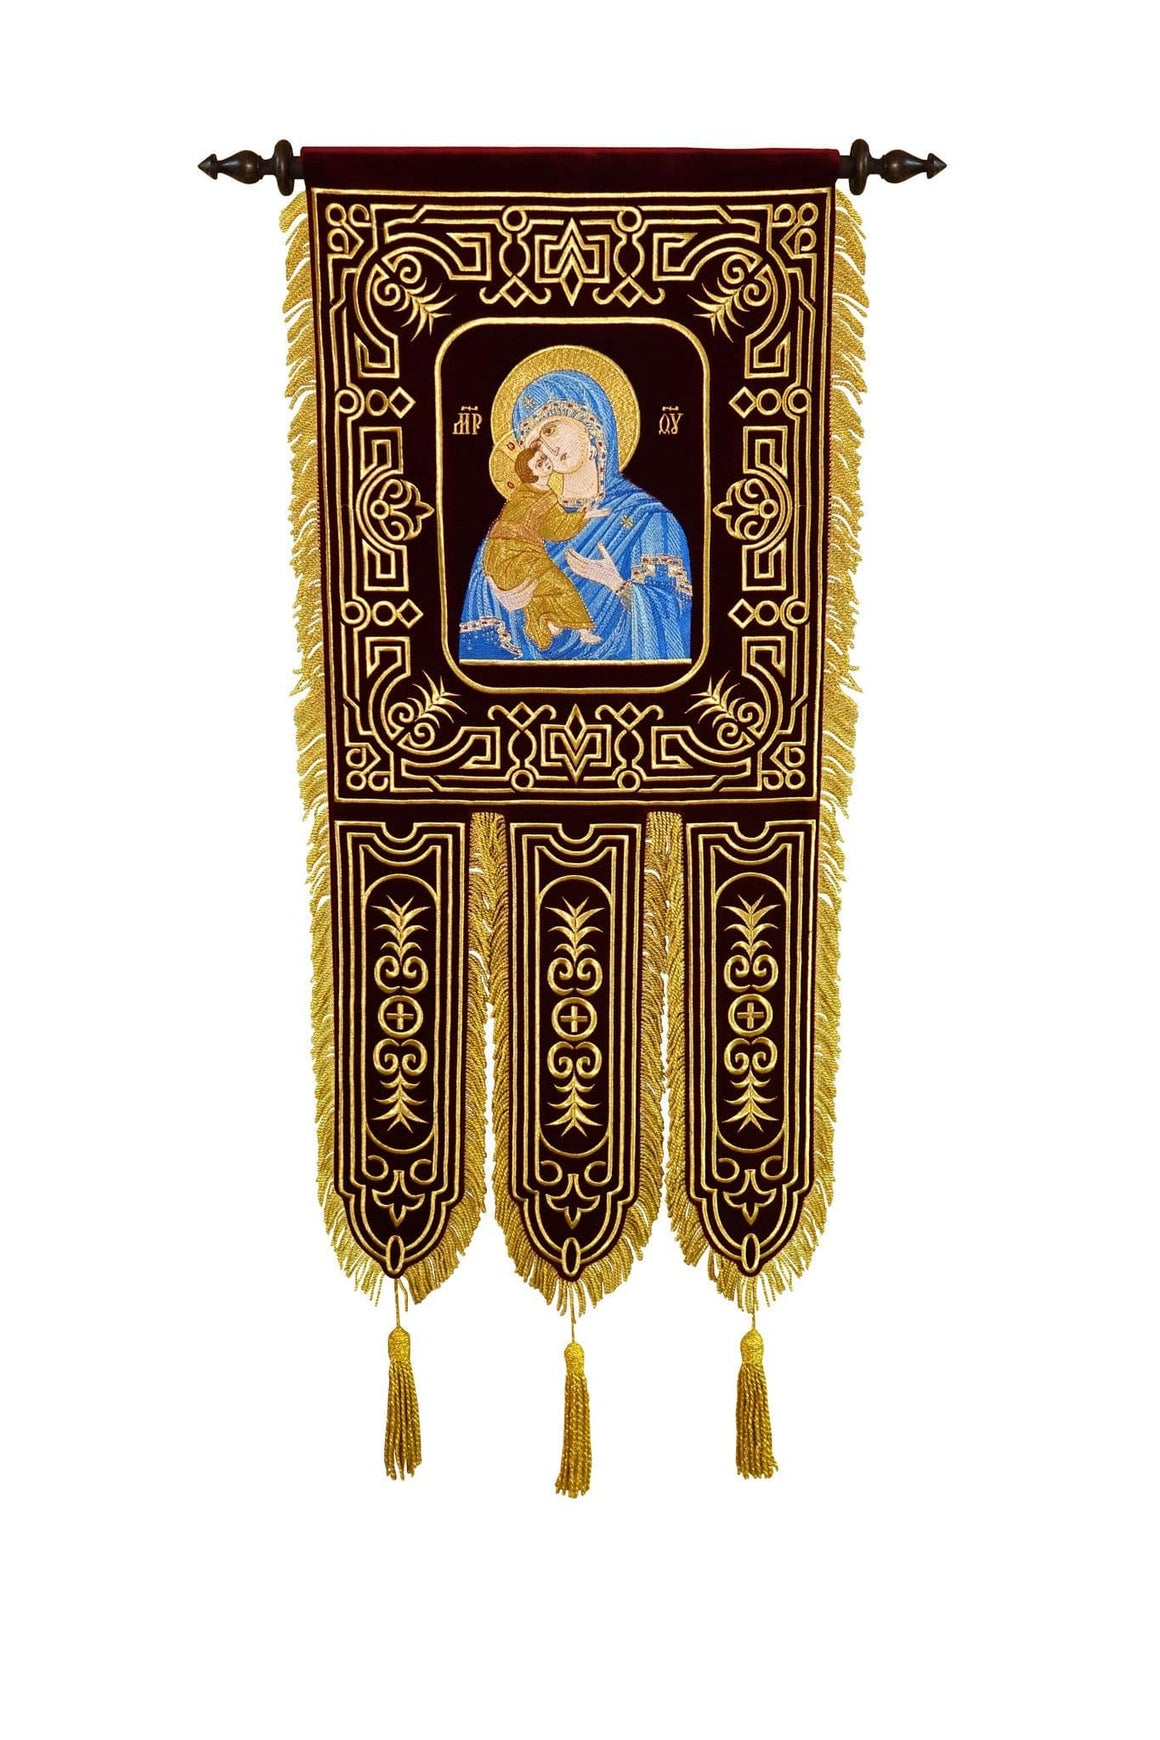 Embroidered Processional Banners (set of 2)